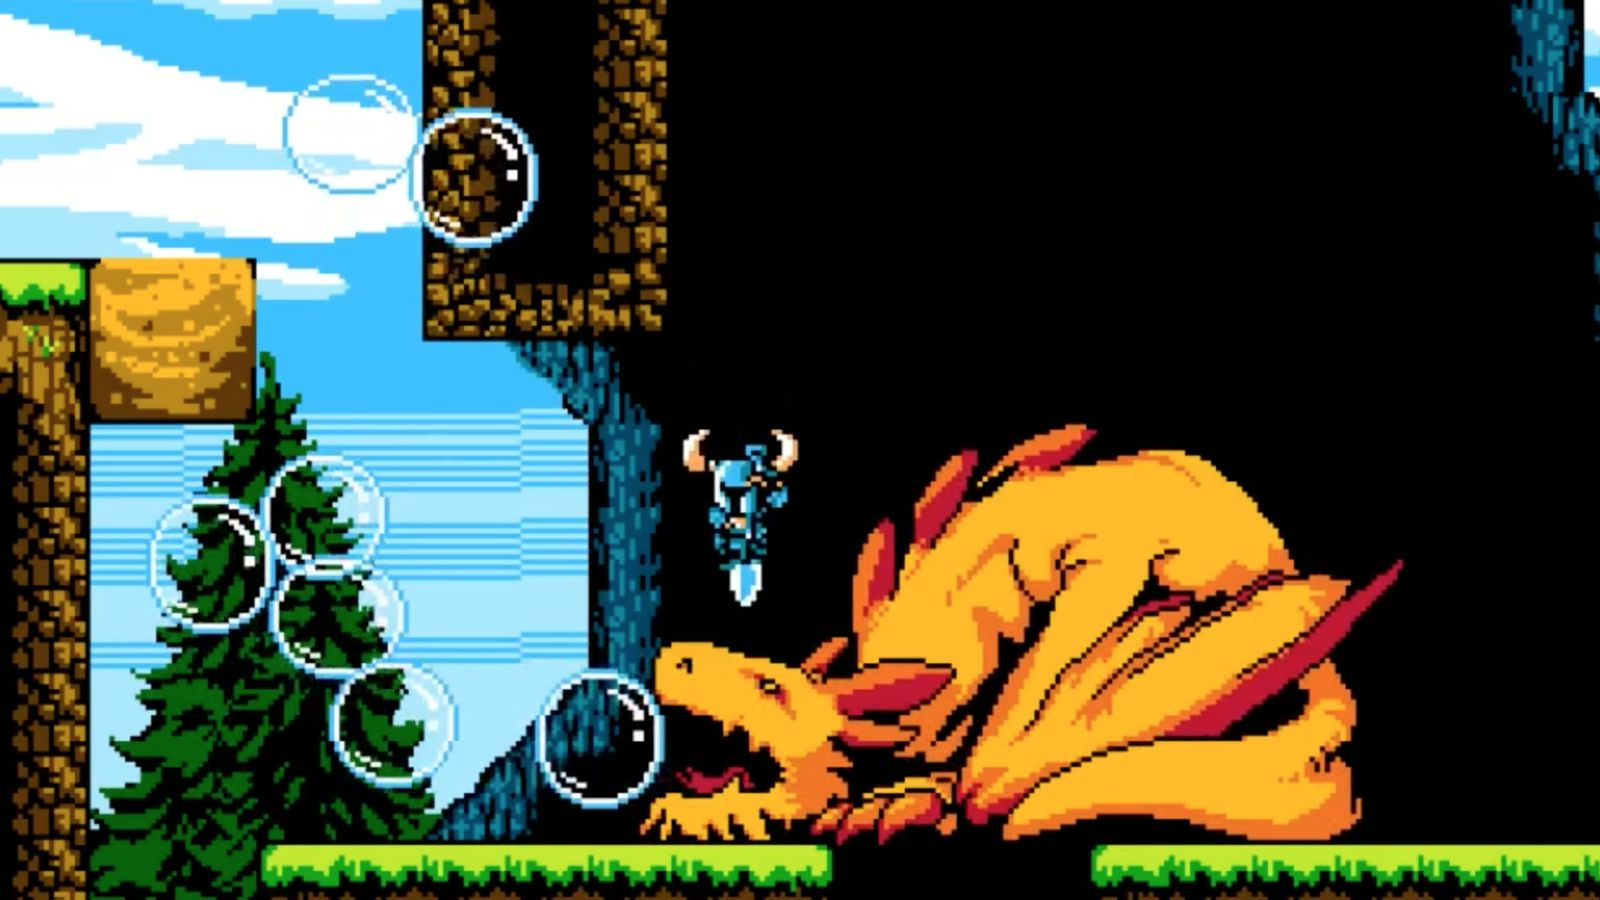 Crowdfunding Platforms Shovel Knight Gameplay Video Bouncing Through The First